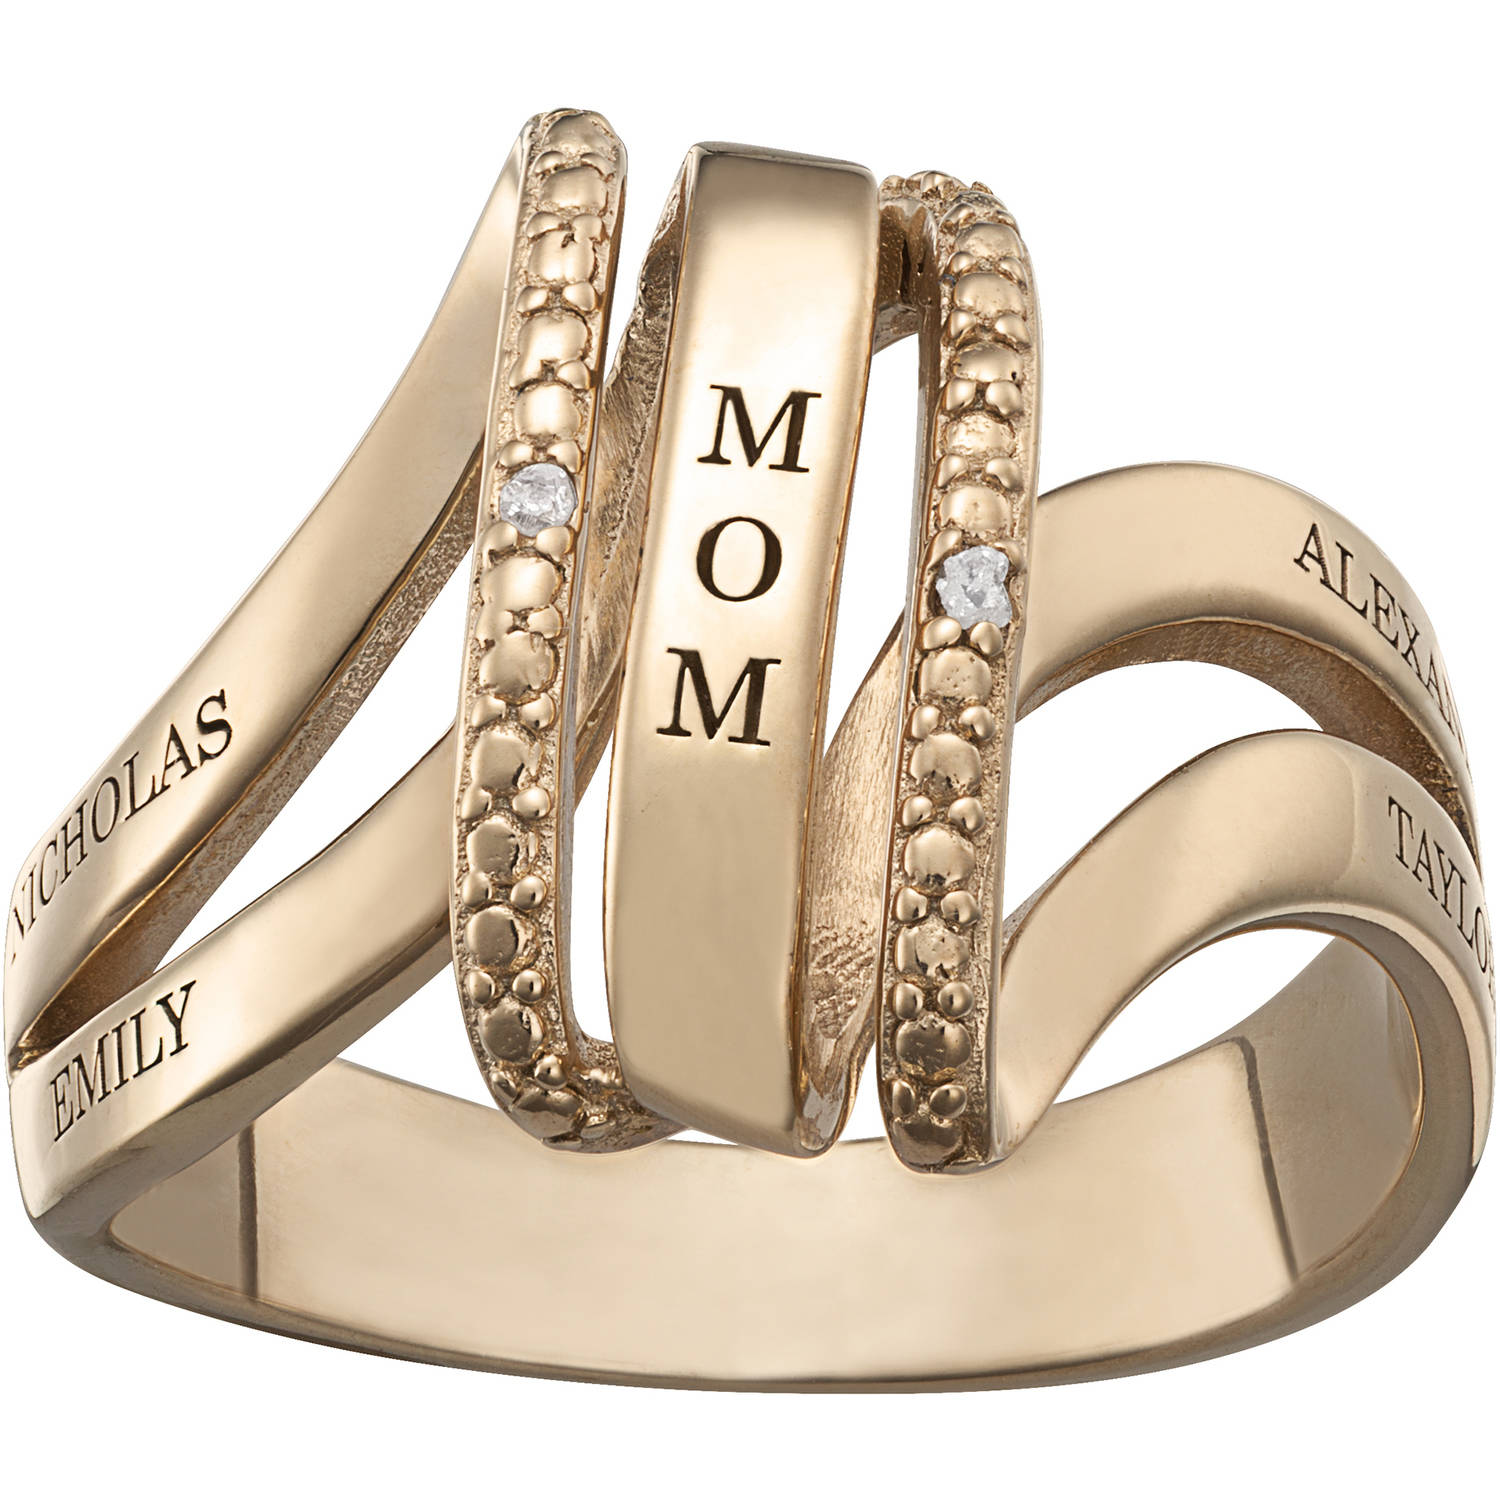 Family Jewelry Personalized Mother's Gold over Silver Engraved Swirl Diamond Accent Ring